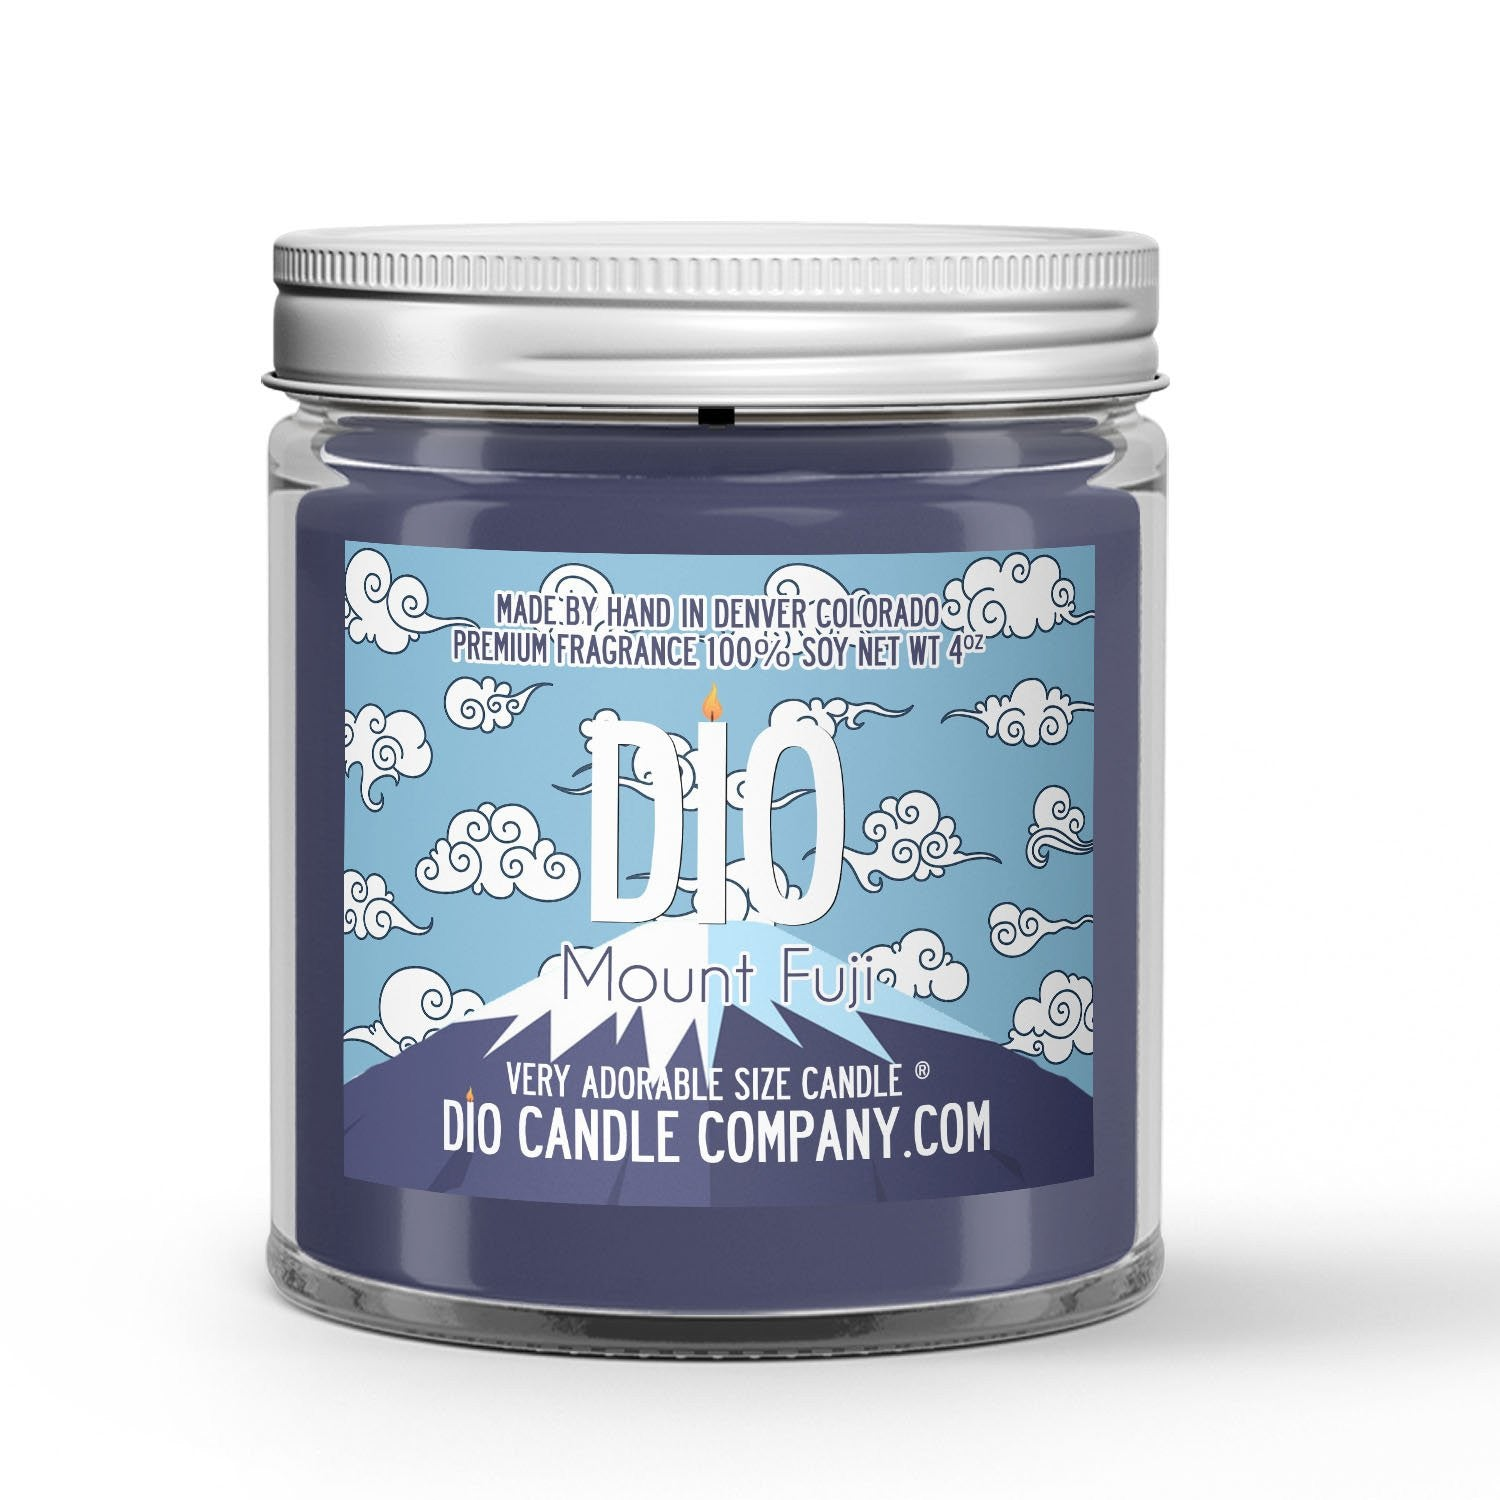 Mount Fuji Candle - Cypress - Snow - 4oz Very Adorable Size Candle® - Dio Candle Company